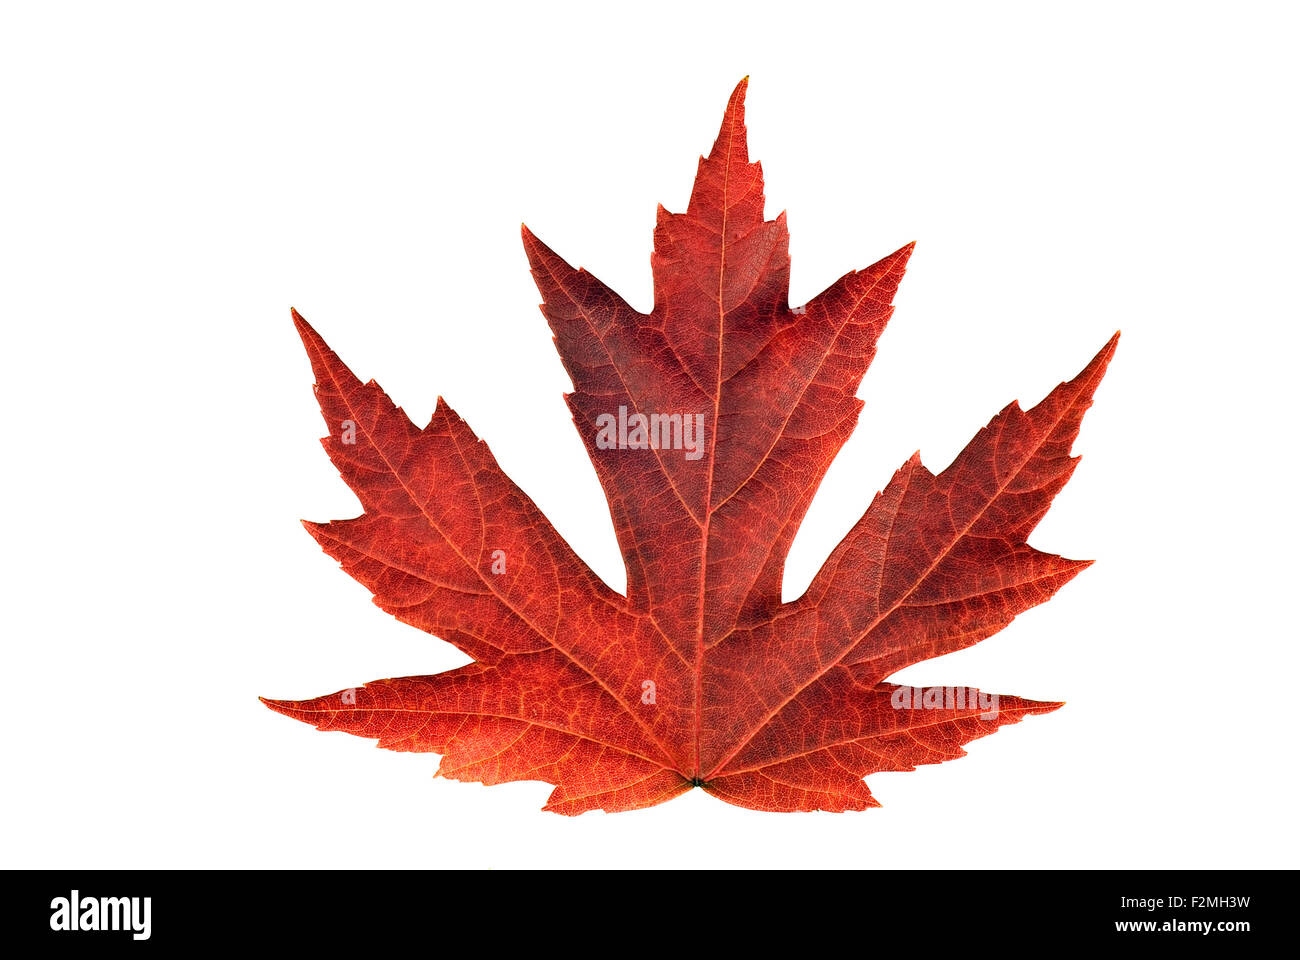 Full size rendering of beautiful Japanese maple leaf during Autumn season brightly colored on white background. - Stock Image